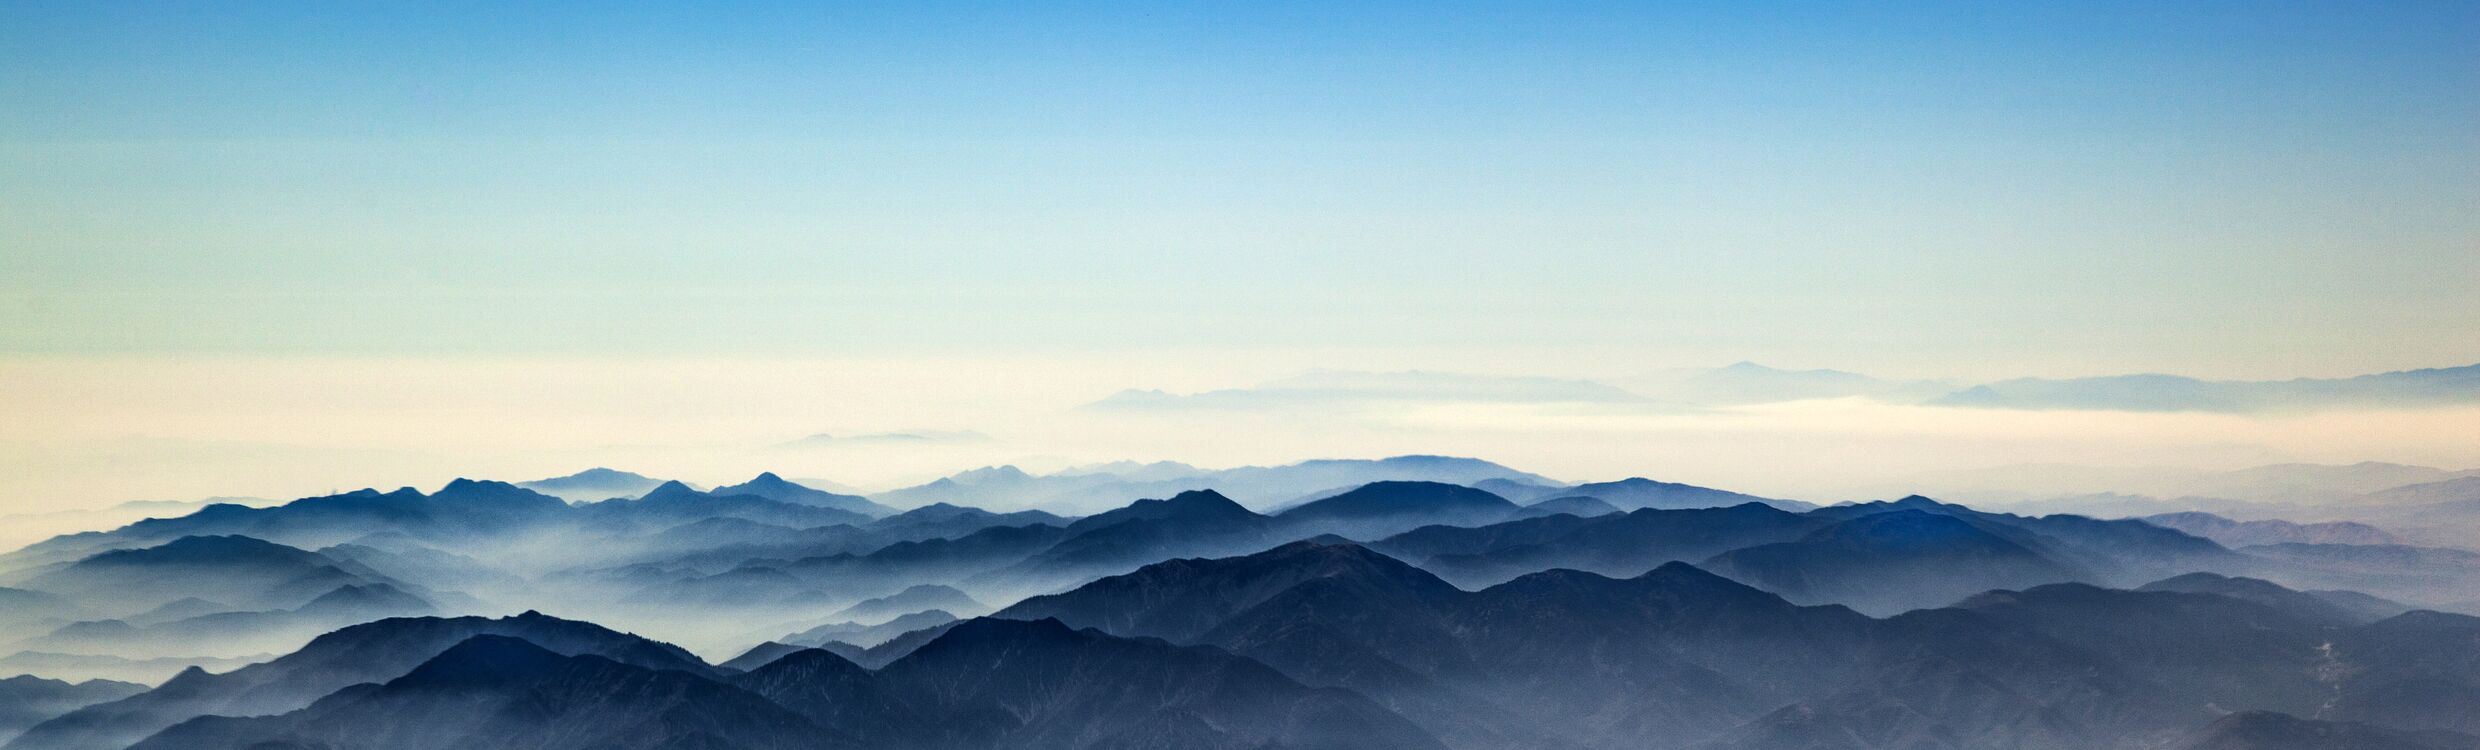 Photo of distant mountains in mist and pale blue sky